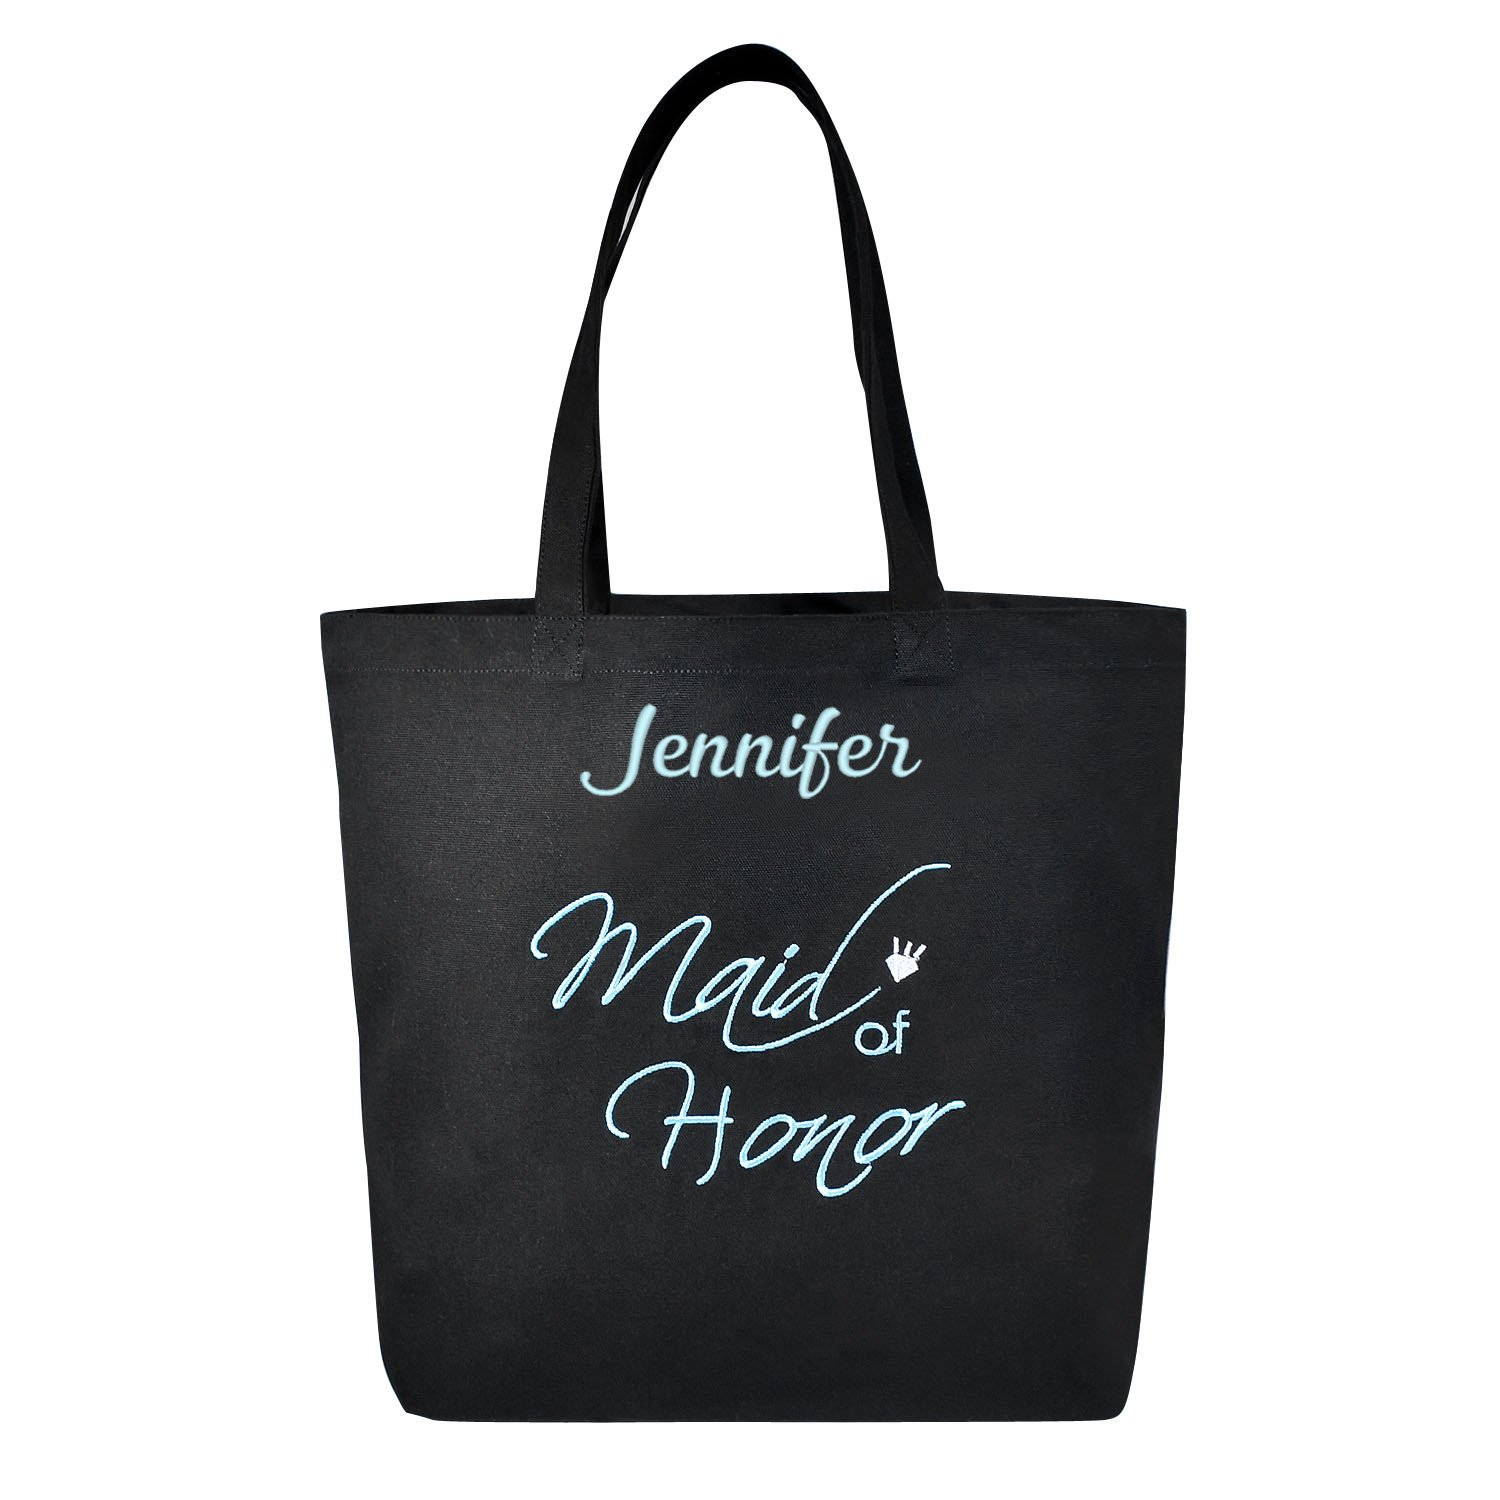 PERSONALIZED Aqua Embroidered Maid of Honor Tote Wedding Gift Black Shoulder Bag 100% Cotton